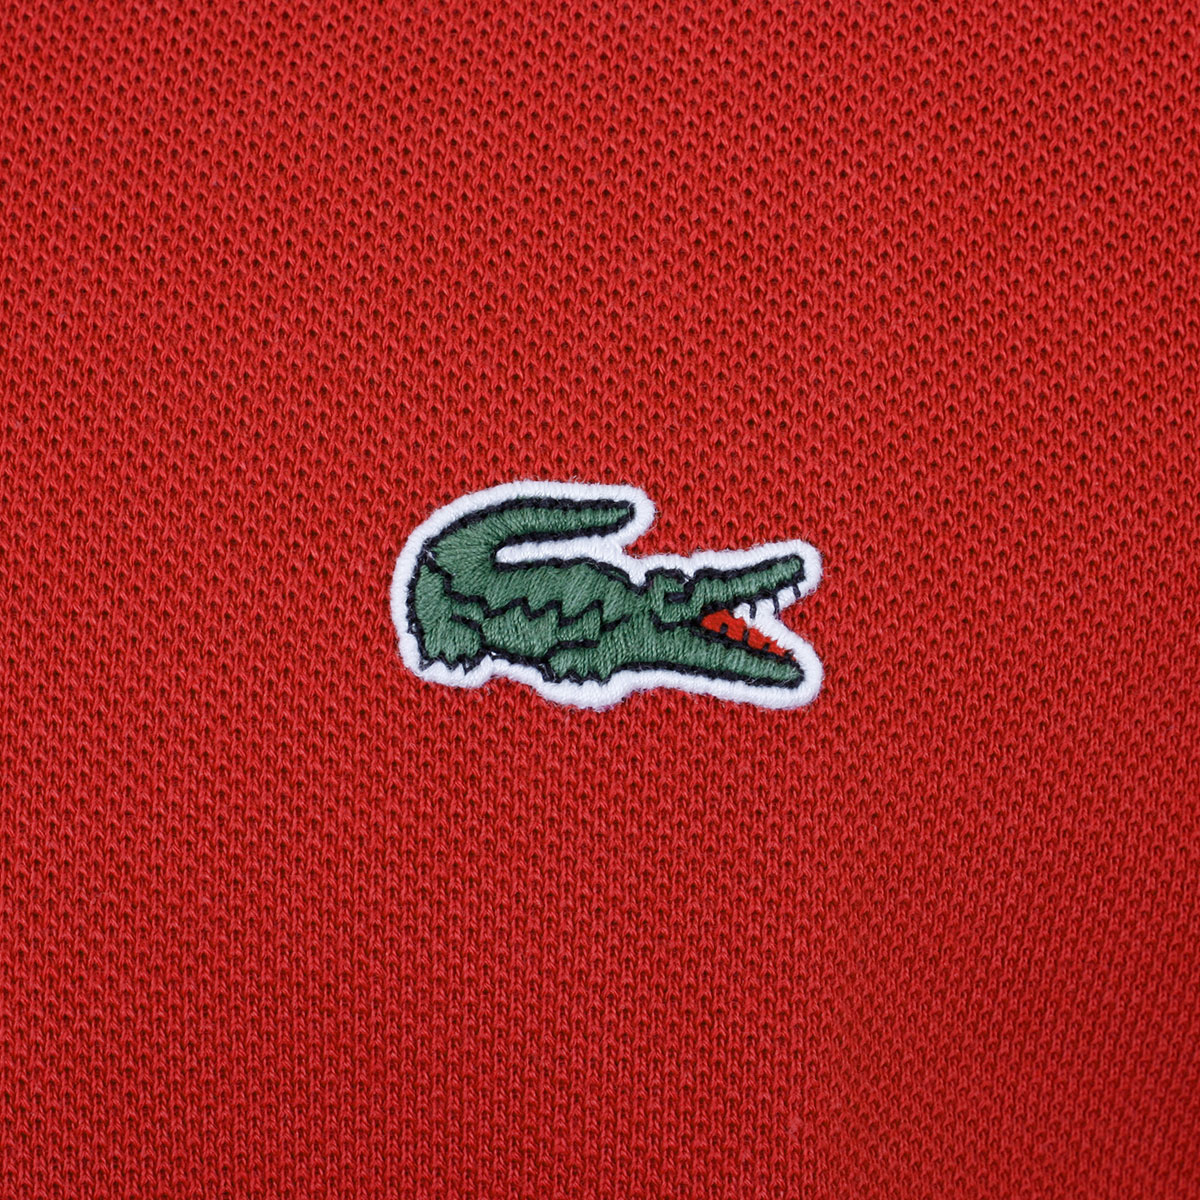 Lacoste-Mens-Classic-Cotton-L1212-Short-Sleeve-Polo-Shirt-30-OFF-RRP